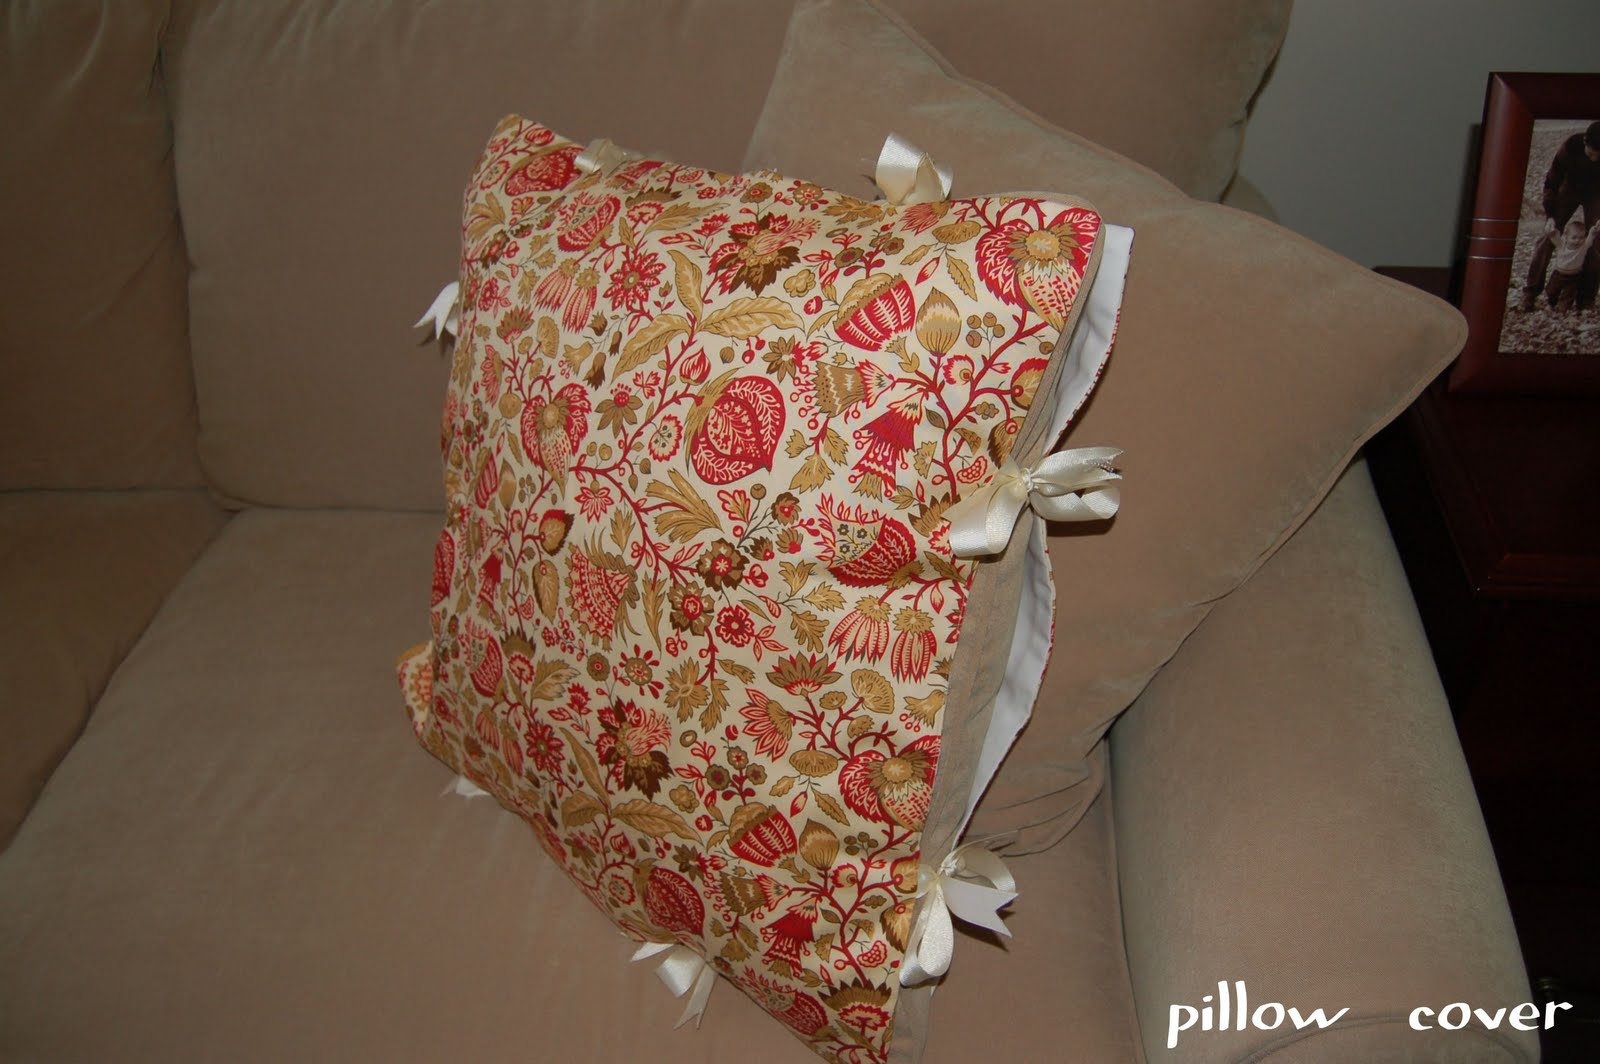 Then I Tied The Two Fabric Pieces Together With The Pillow